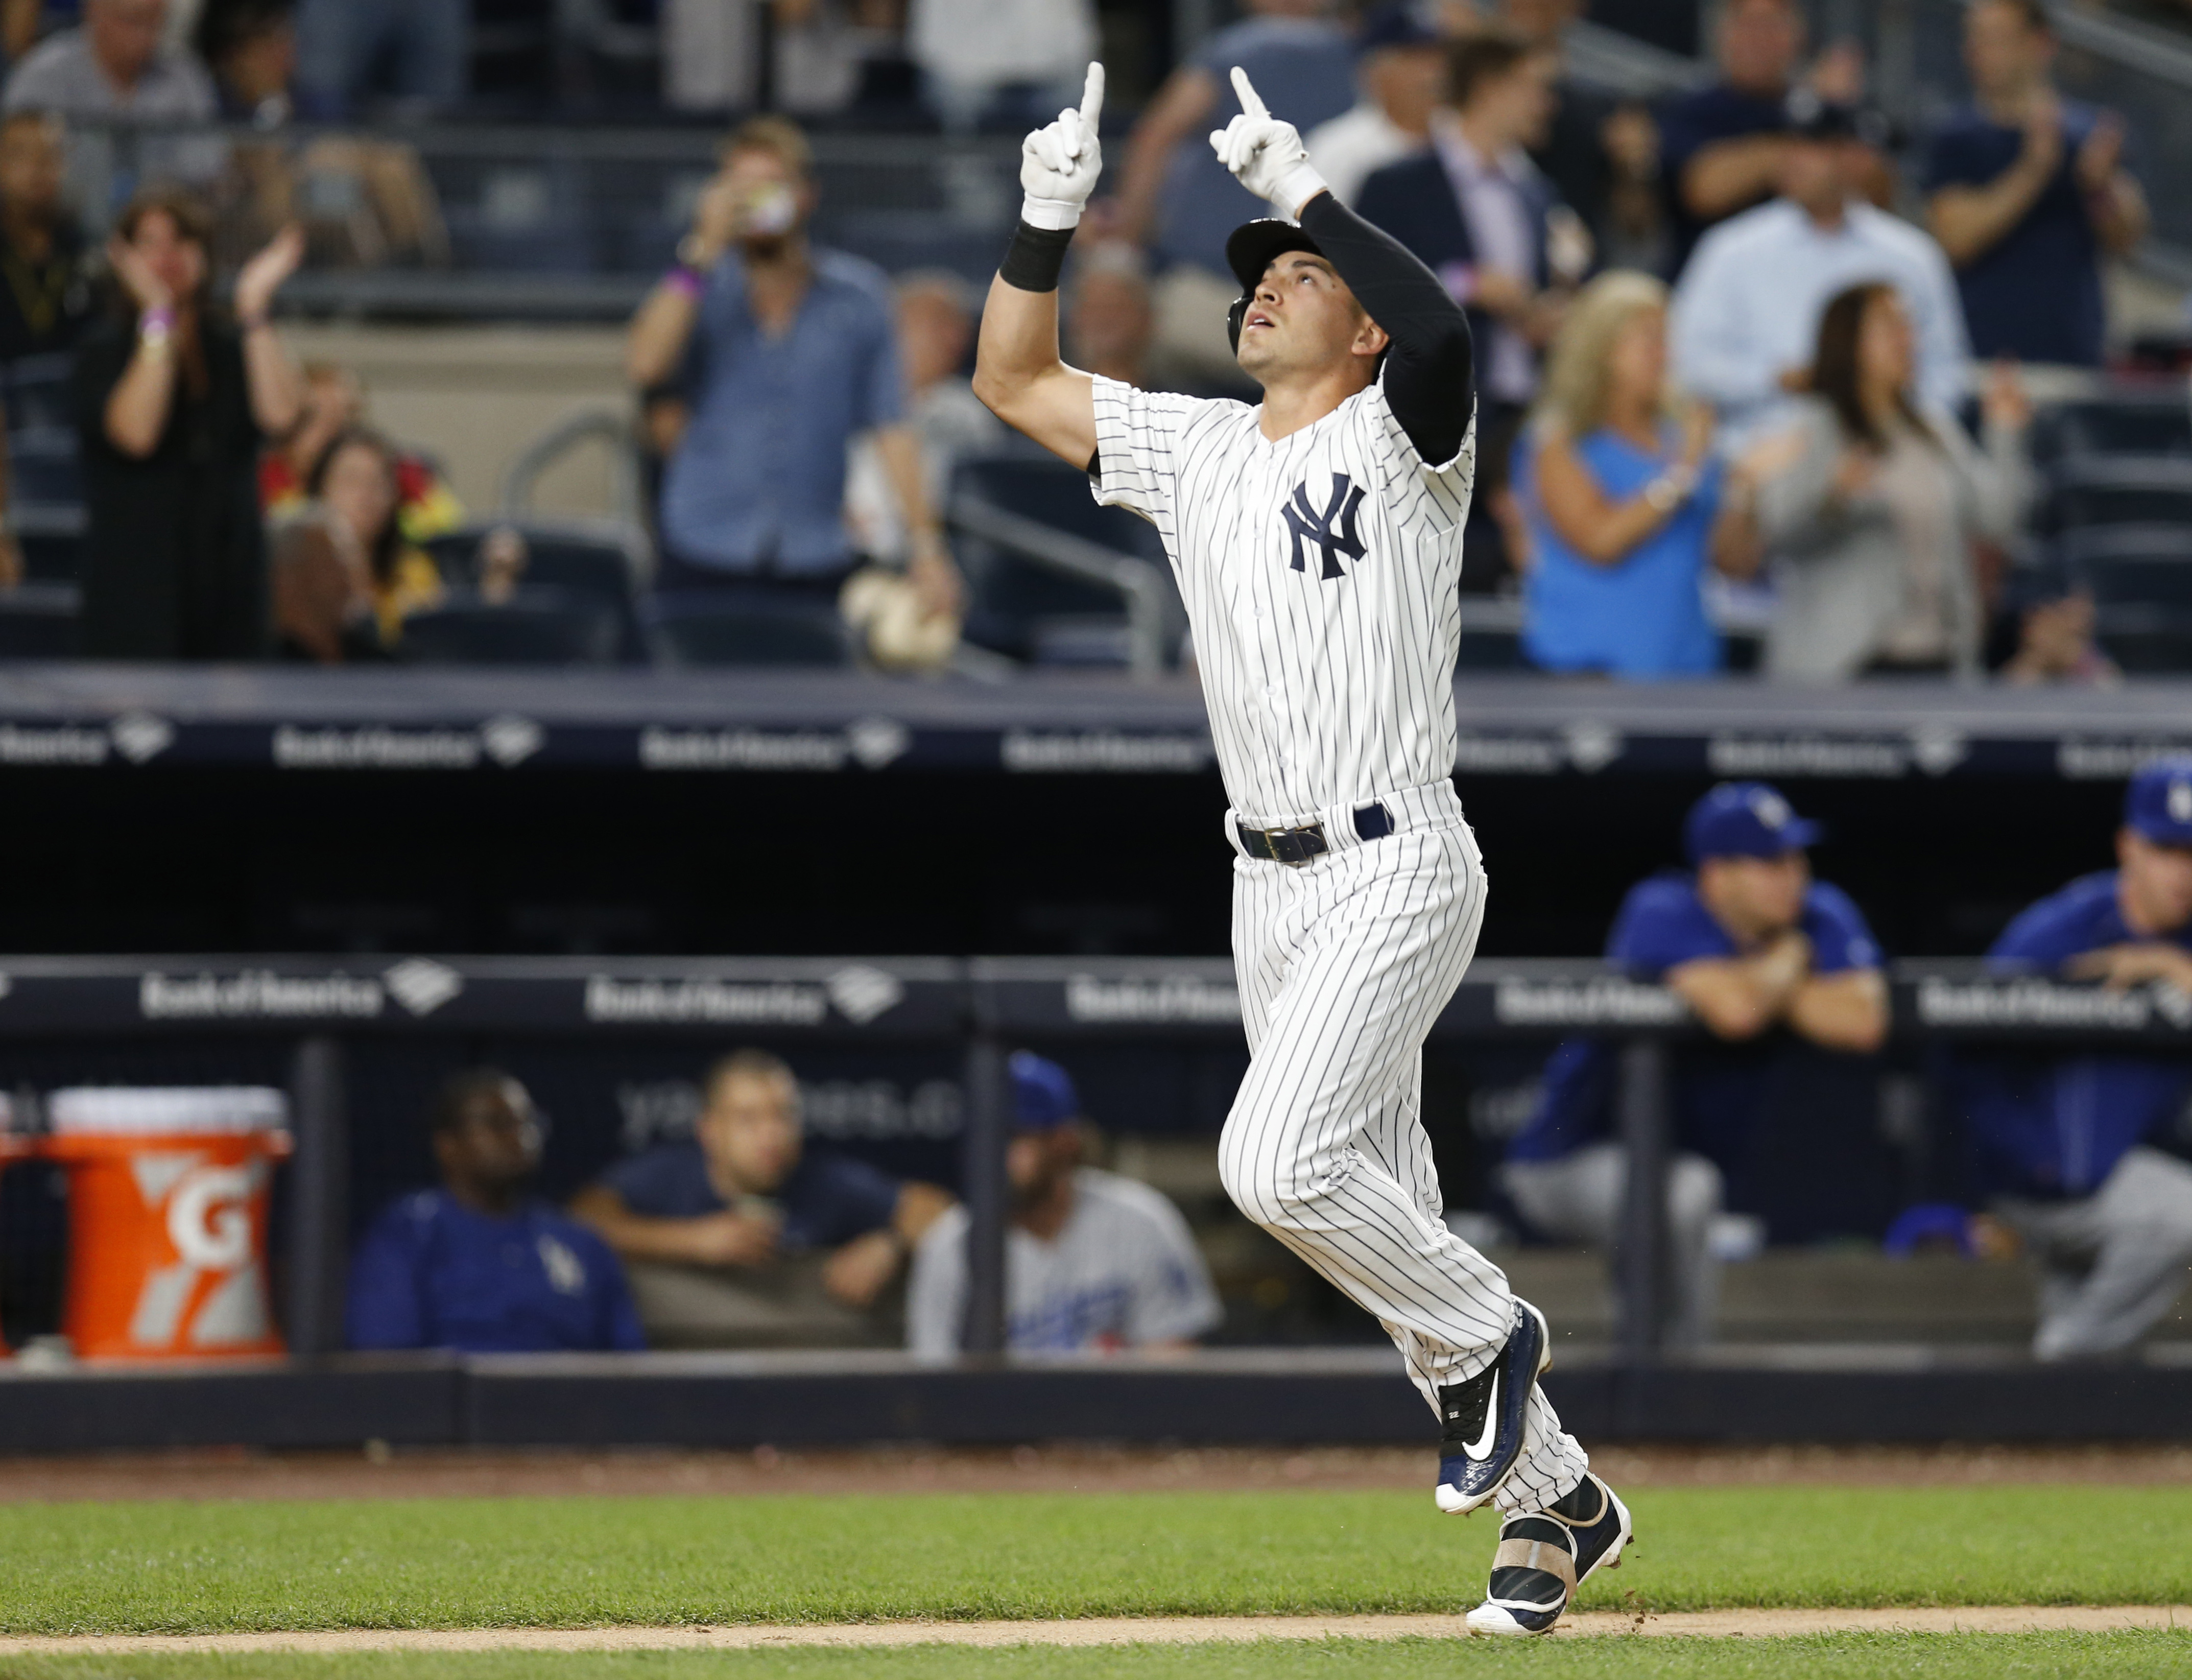 New York Yankees pinch-hitter Jacoby Ellsbury points skyward  as he scores on a seventh-inning solo home run against the Los Angeles Dodgers in a baseball game in New York, Tuesday, Sept. 13, 2016. (AP Photo/Kathy Willens)